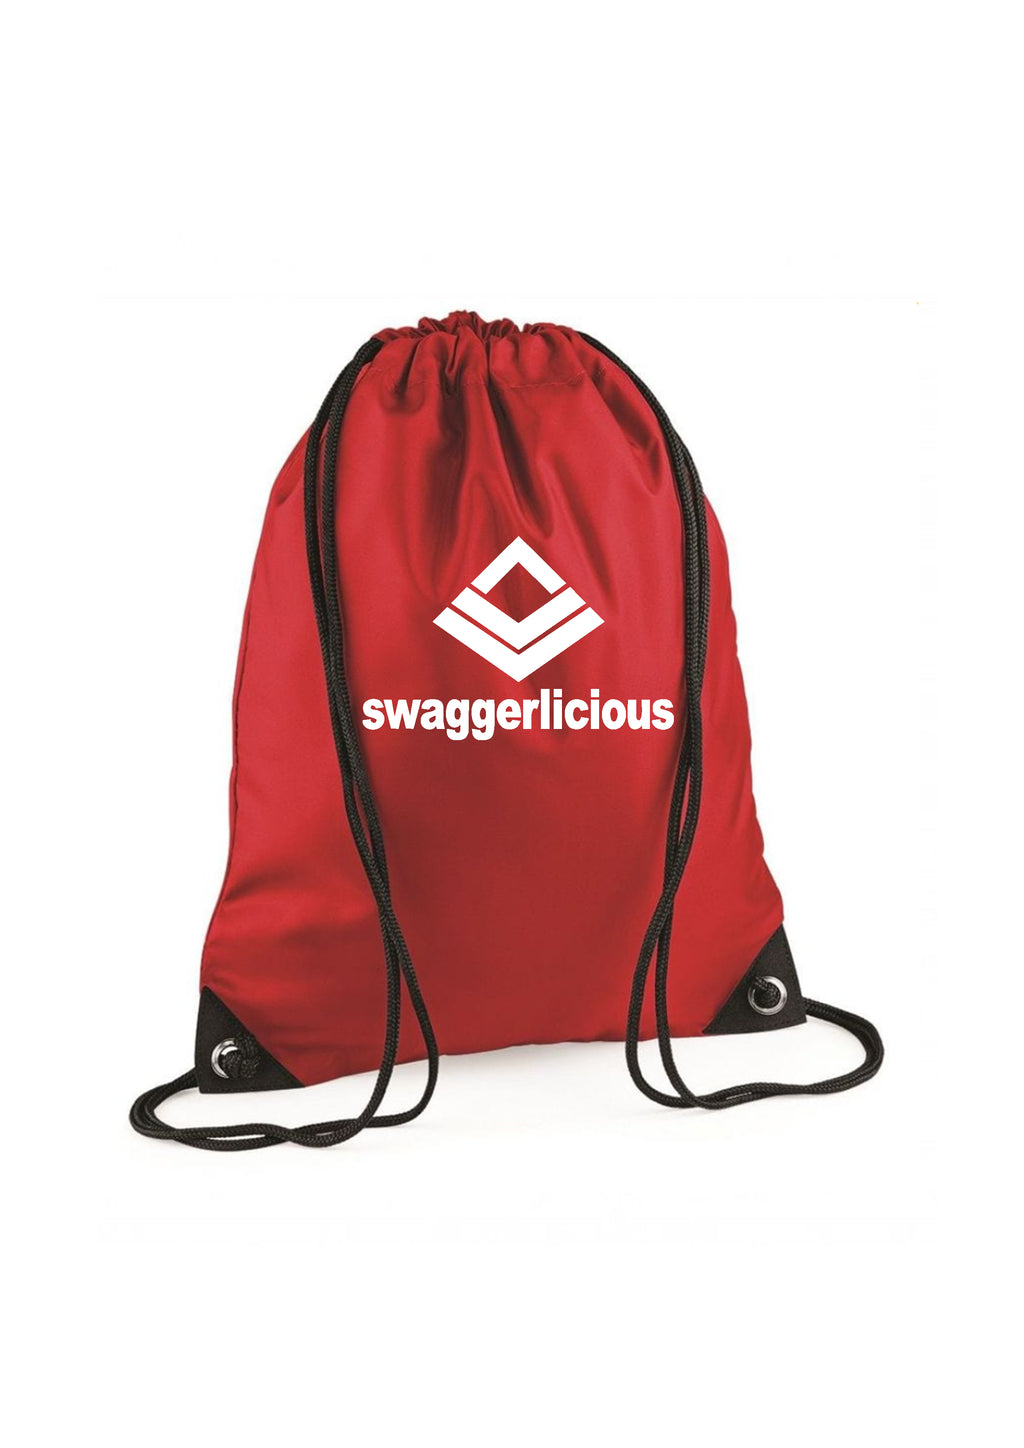 RED SWAGGERLICIOUS GYM SACK - swaggerlicious-clothing.com